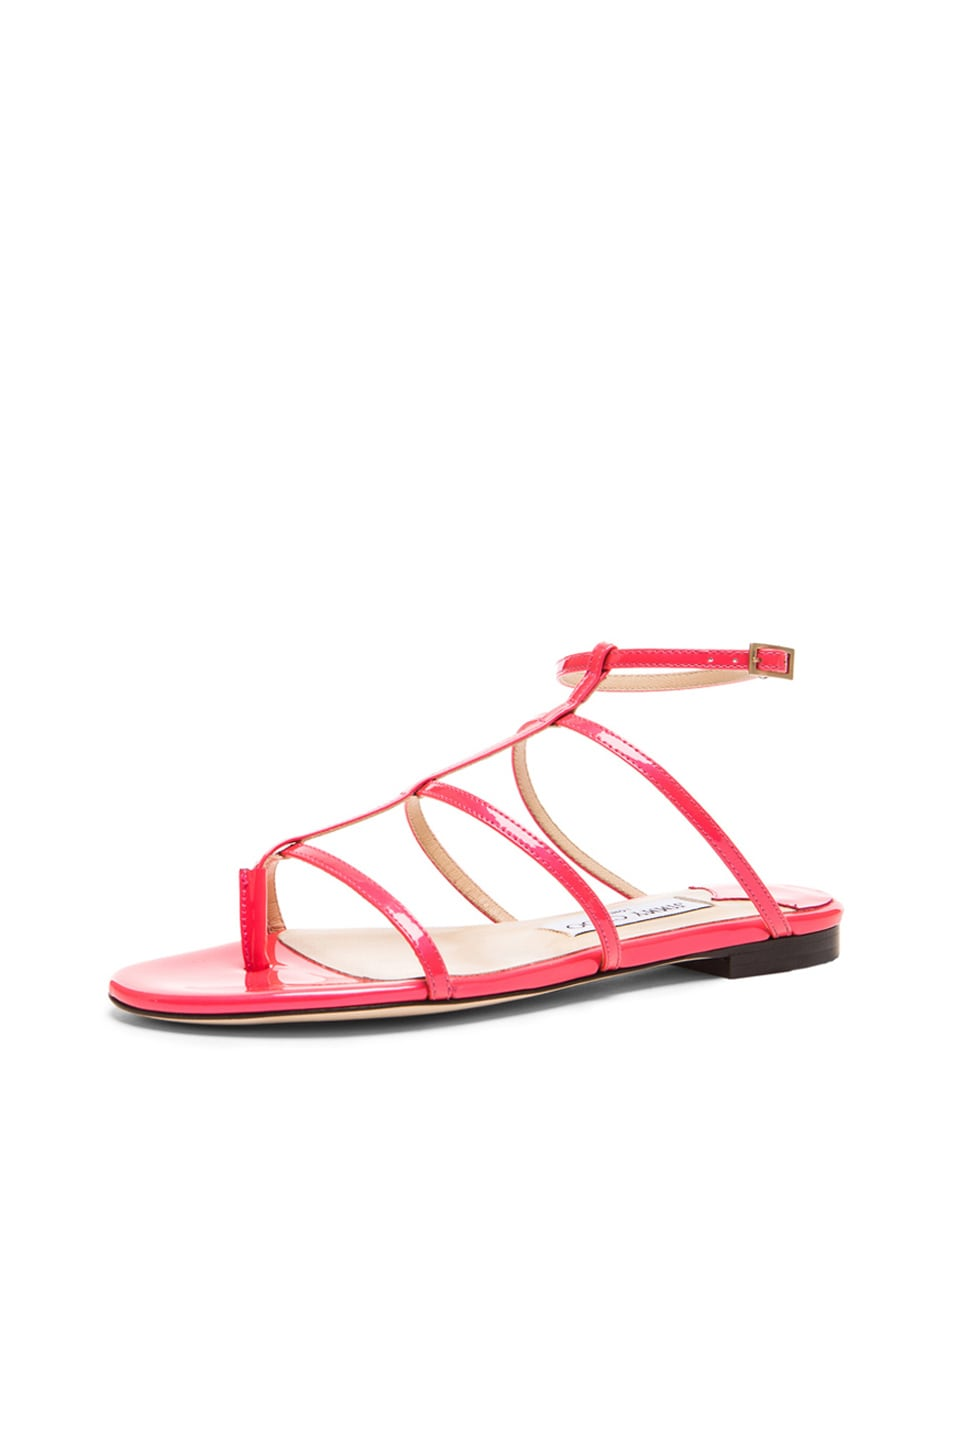 81e64f28b6e22 Image 2 of Jimmy Choo Doodle Patent Leather Thong Sandals in Geranium